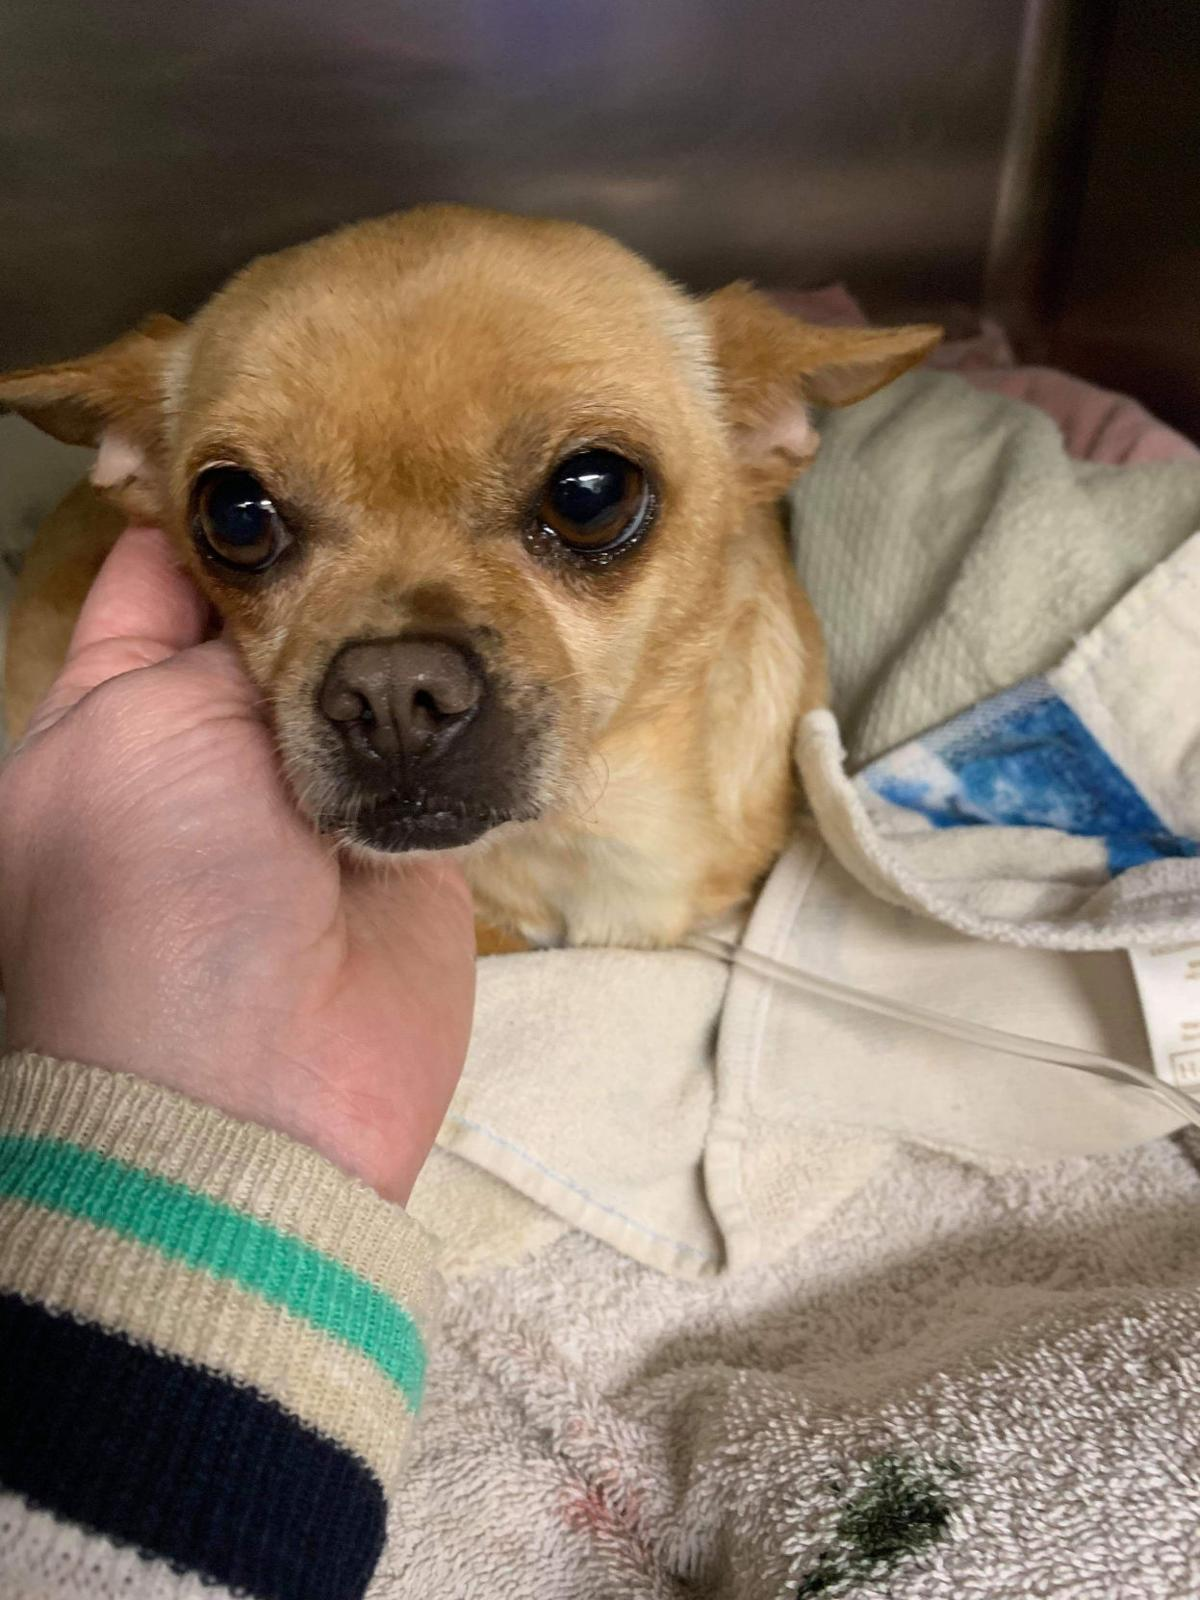 Accident turns into happy ending for dog in Hermiston